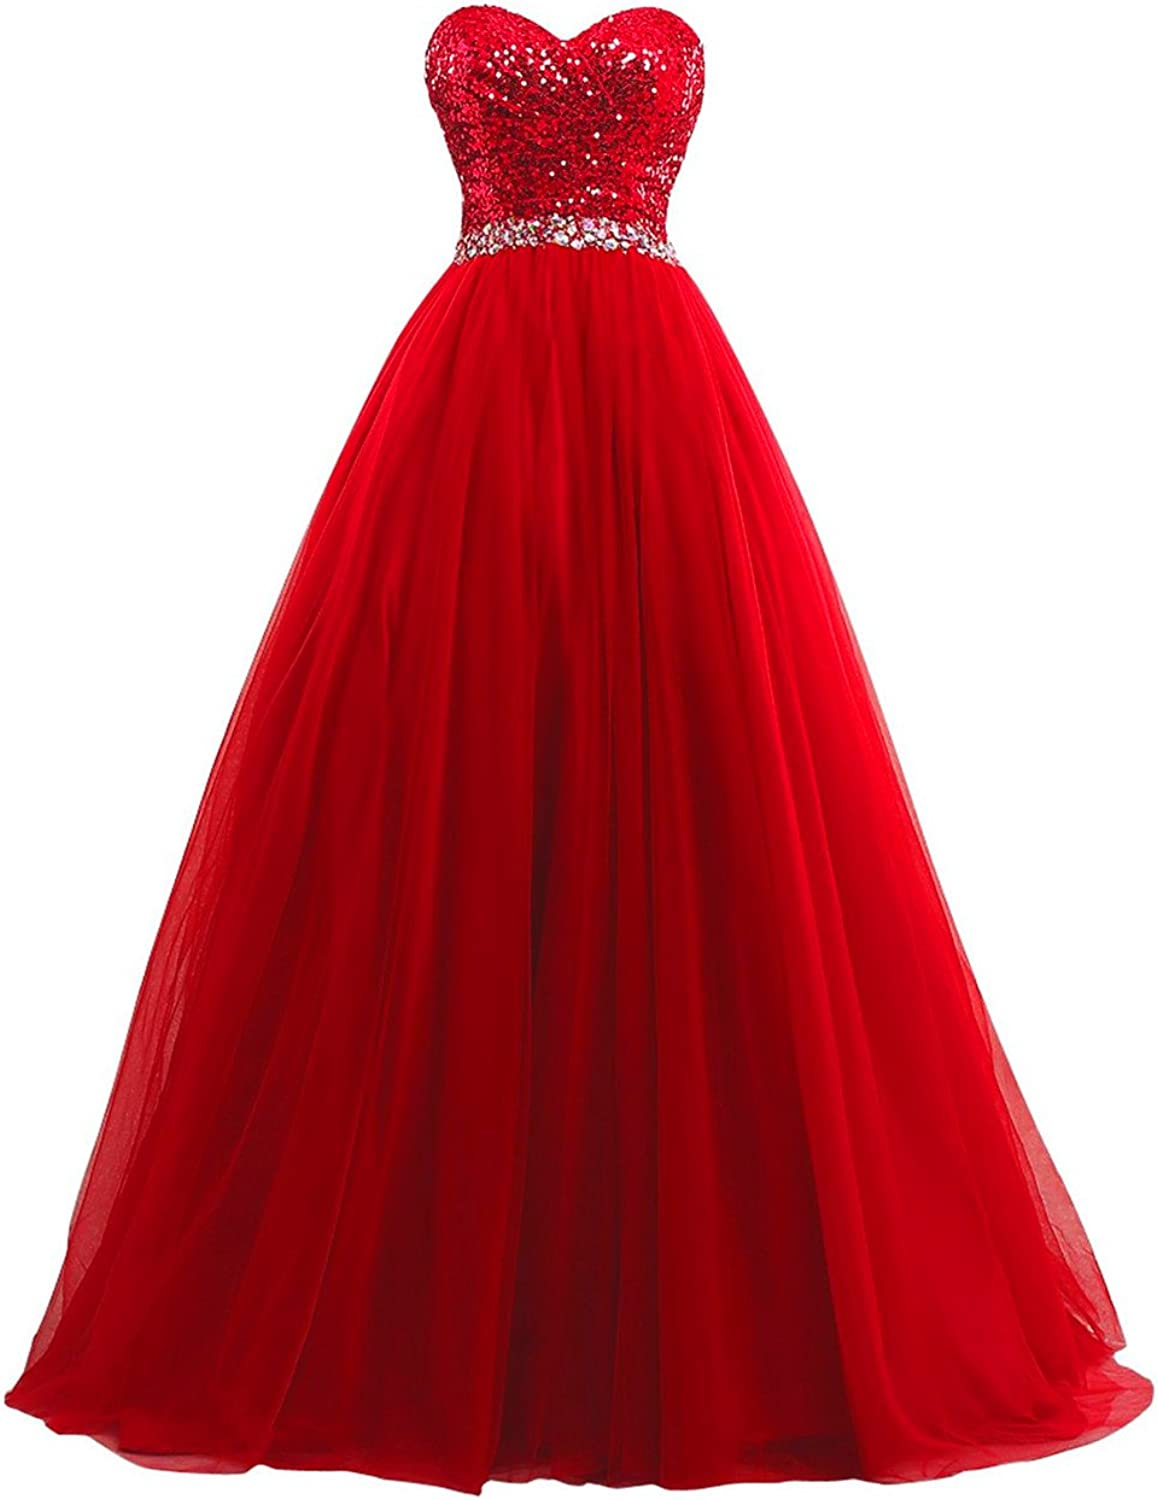 XingMeng Women's A Line Long Prom Bridesmaid Dress Sequin Party Formal Dresses Ball Gowns